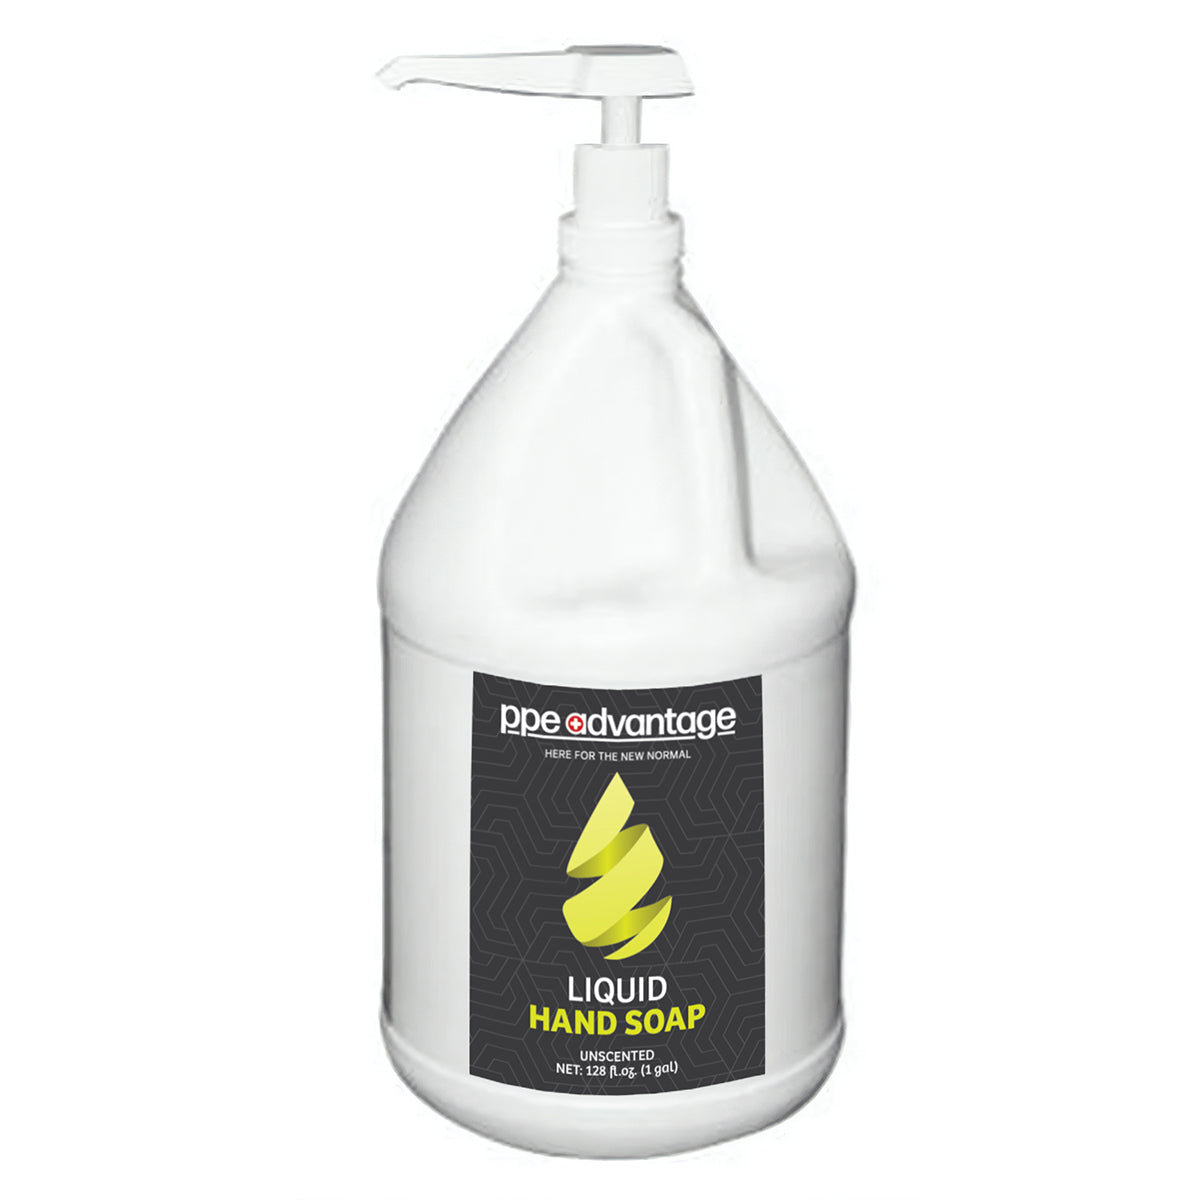 3029 PPE Advantage Liquid Hand Soap (1gal) - PPEA Branded Label | PPE Advantate powered by dS Product Hunters